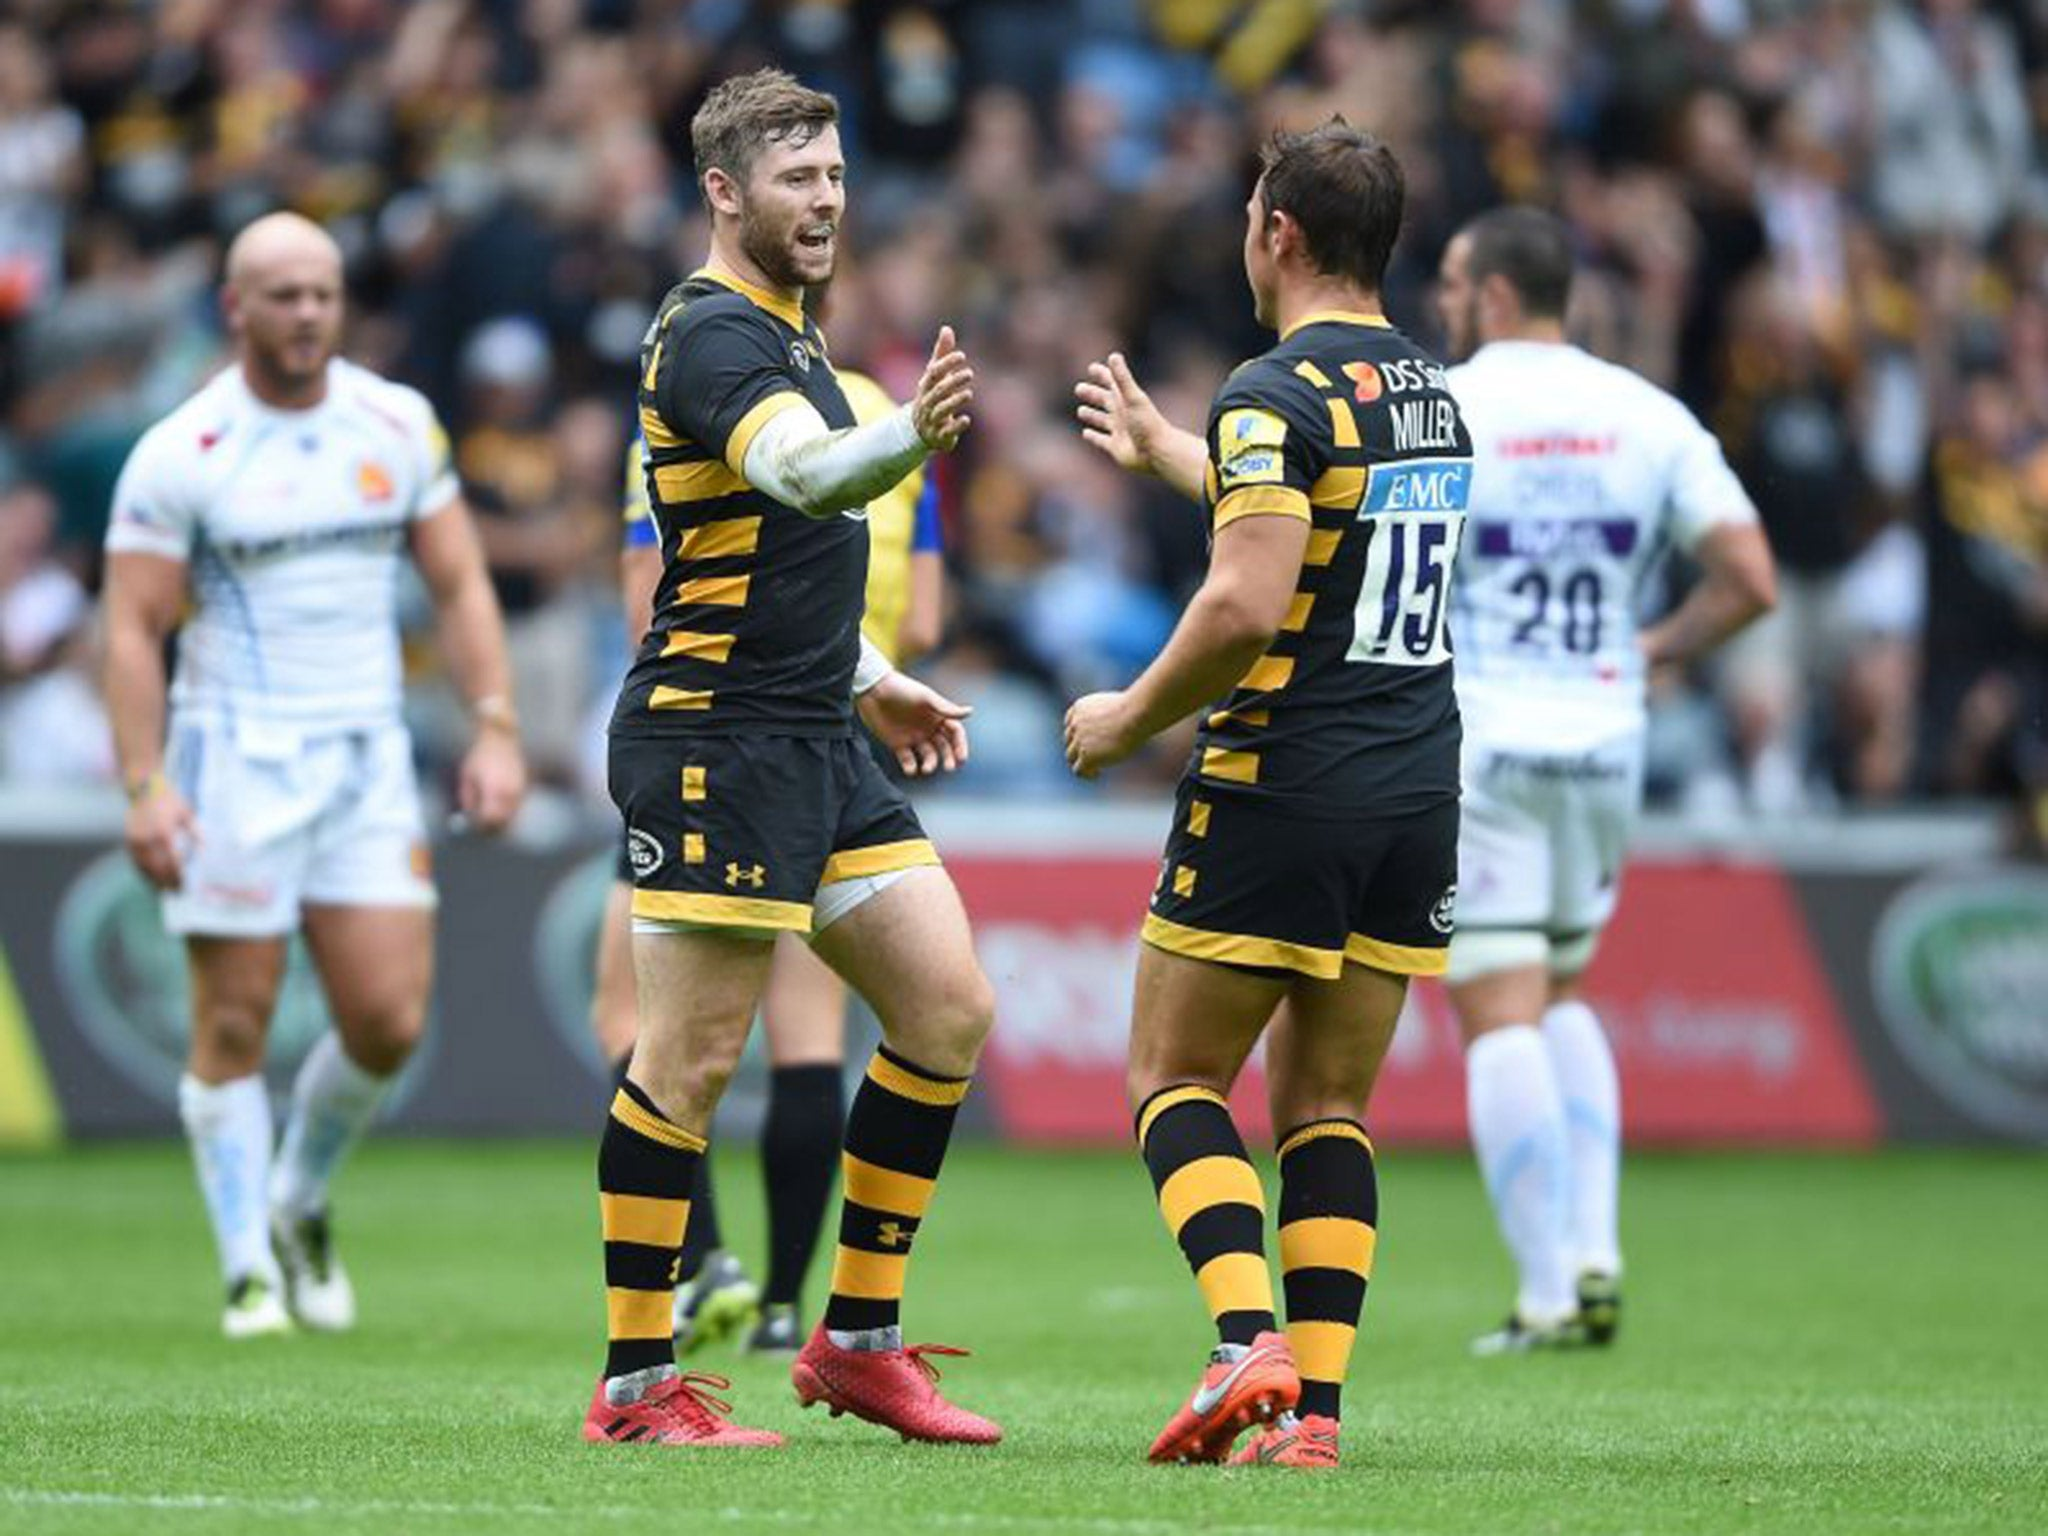 Wasps Vs Exeter Chiefs Match Report Danny Cipriani Returns As Tommy Taylor Try Ensures Triumphant Return The Independent The Independent